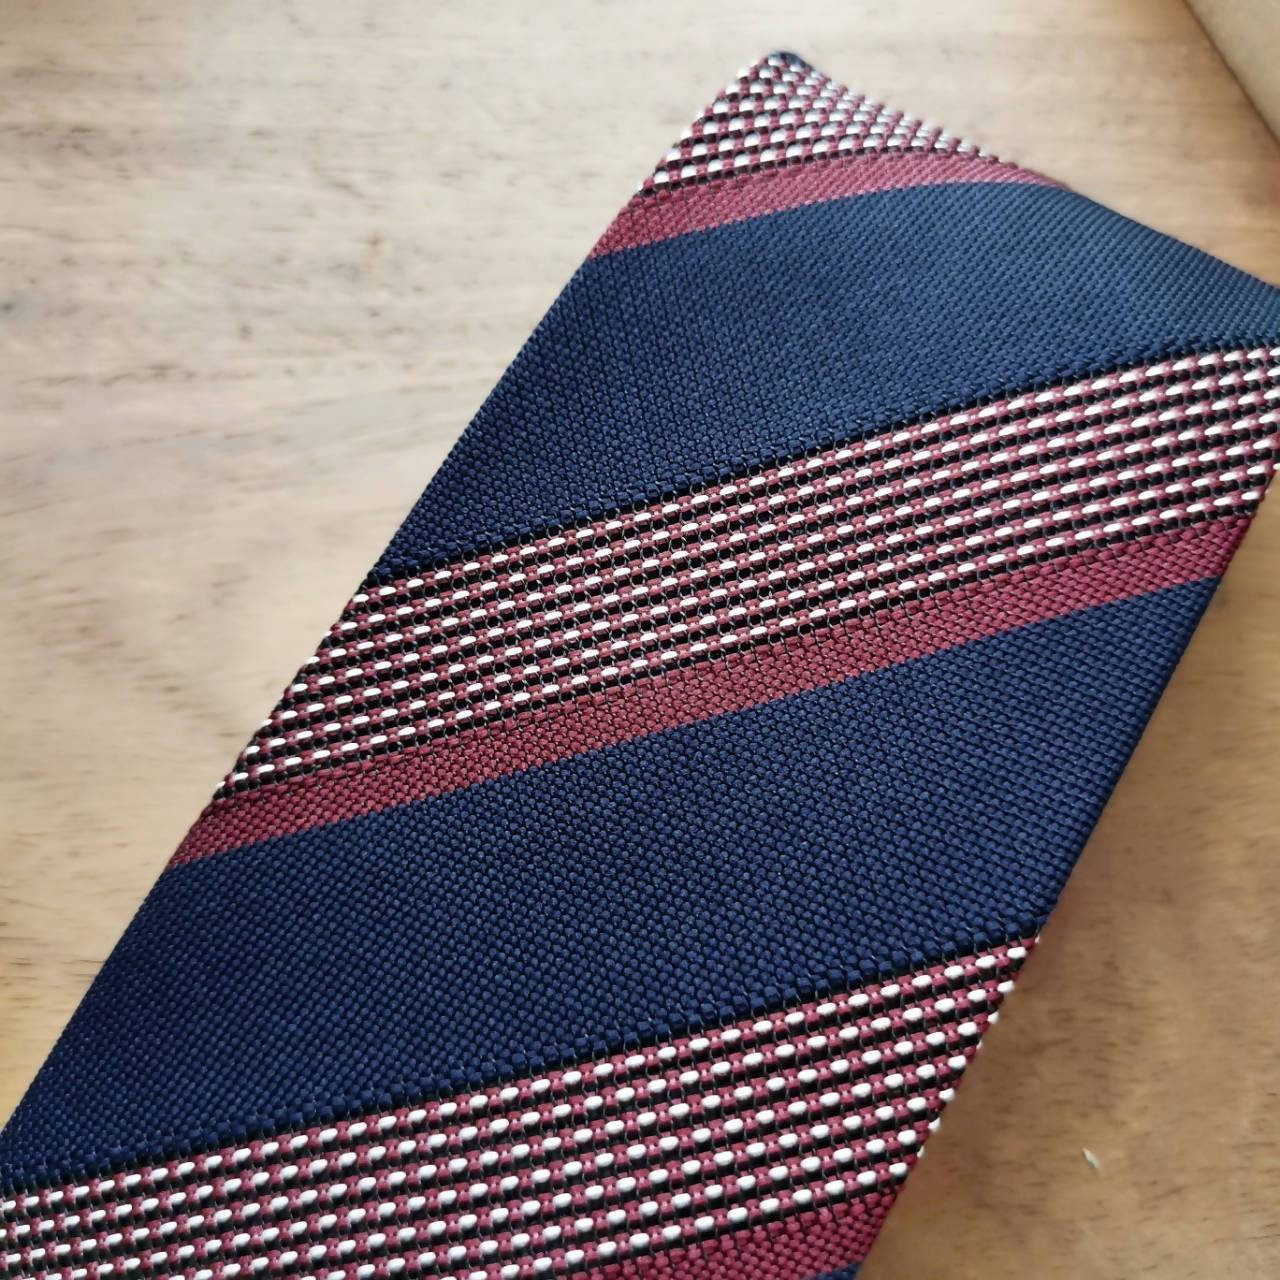 Vintage Royal Blue with Red Stripe Necktie - Ties - Tuesday Evening - Naiise